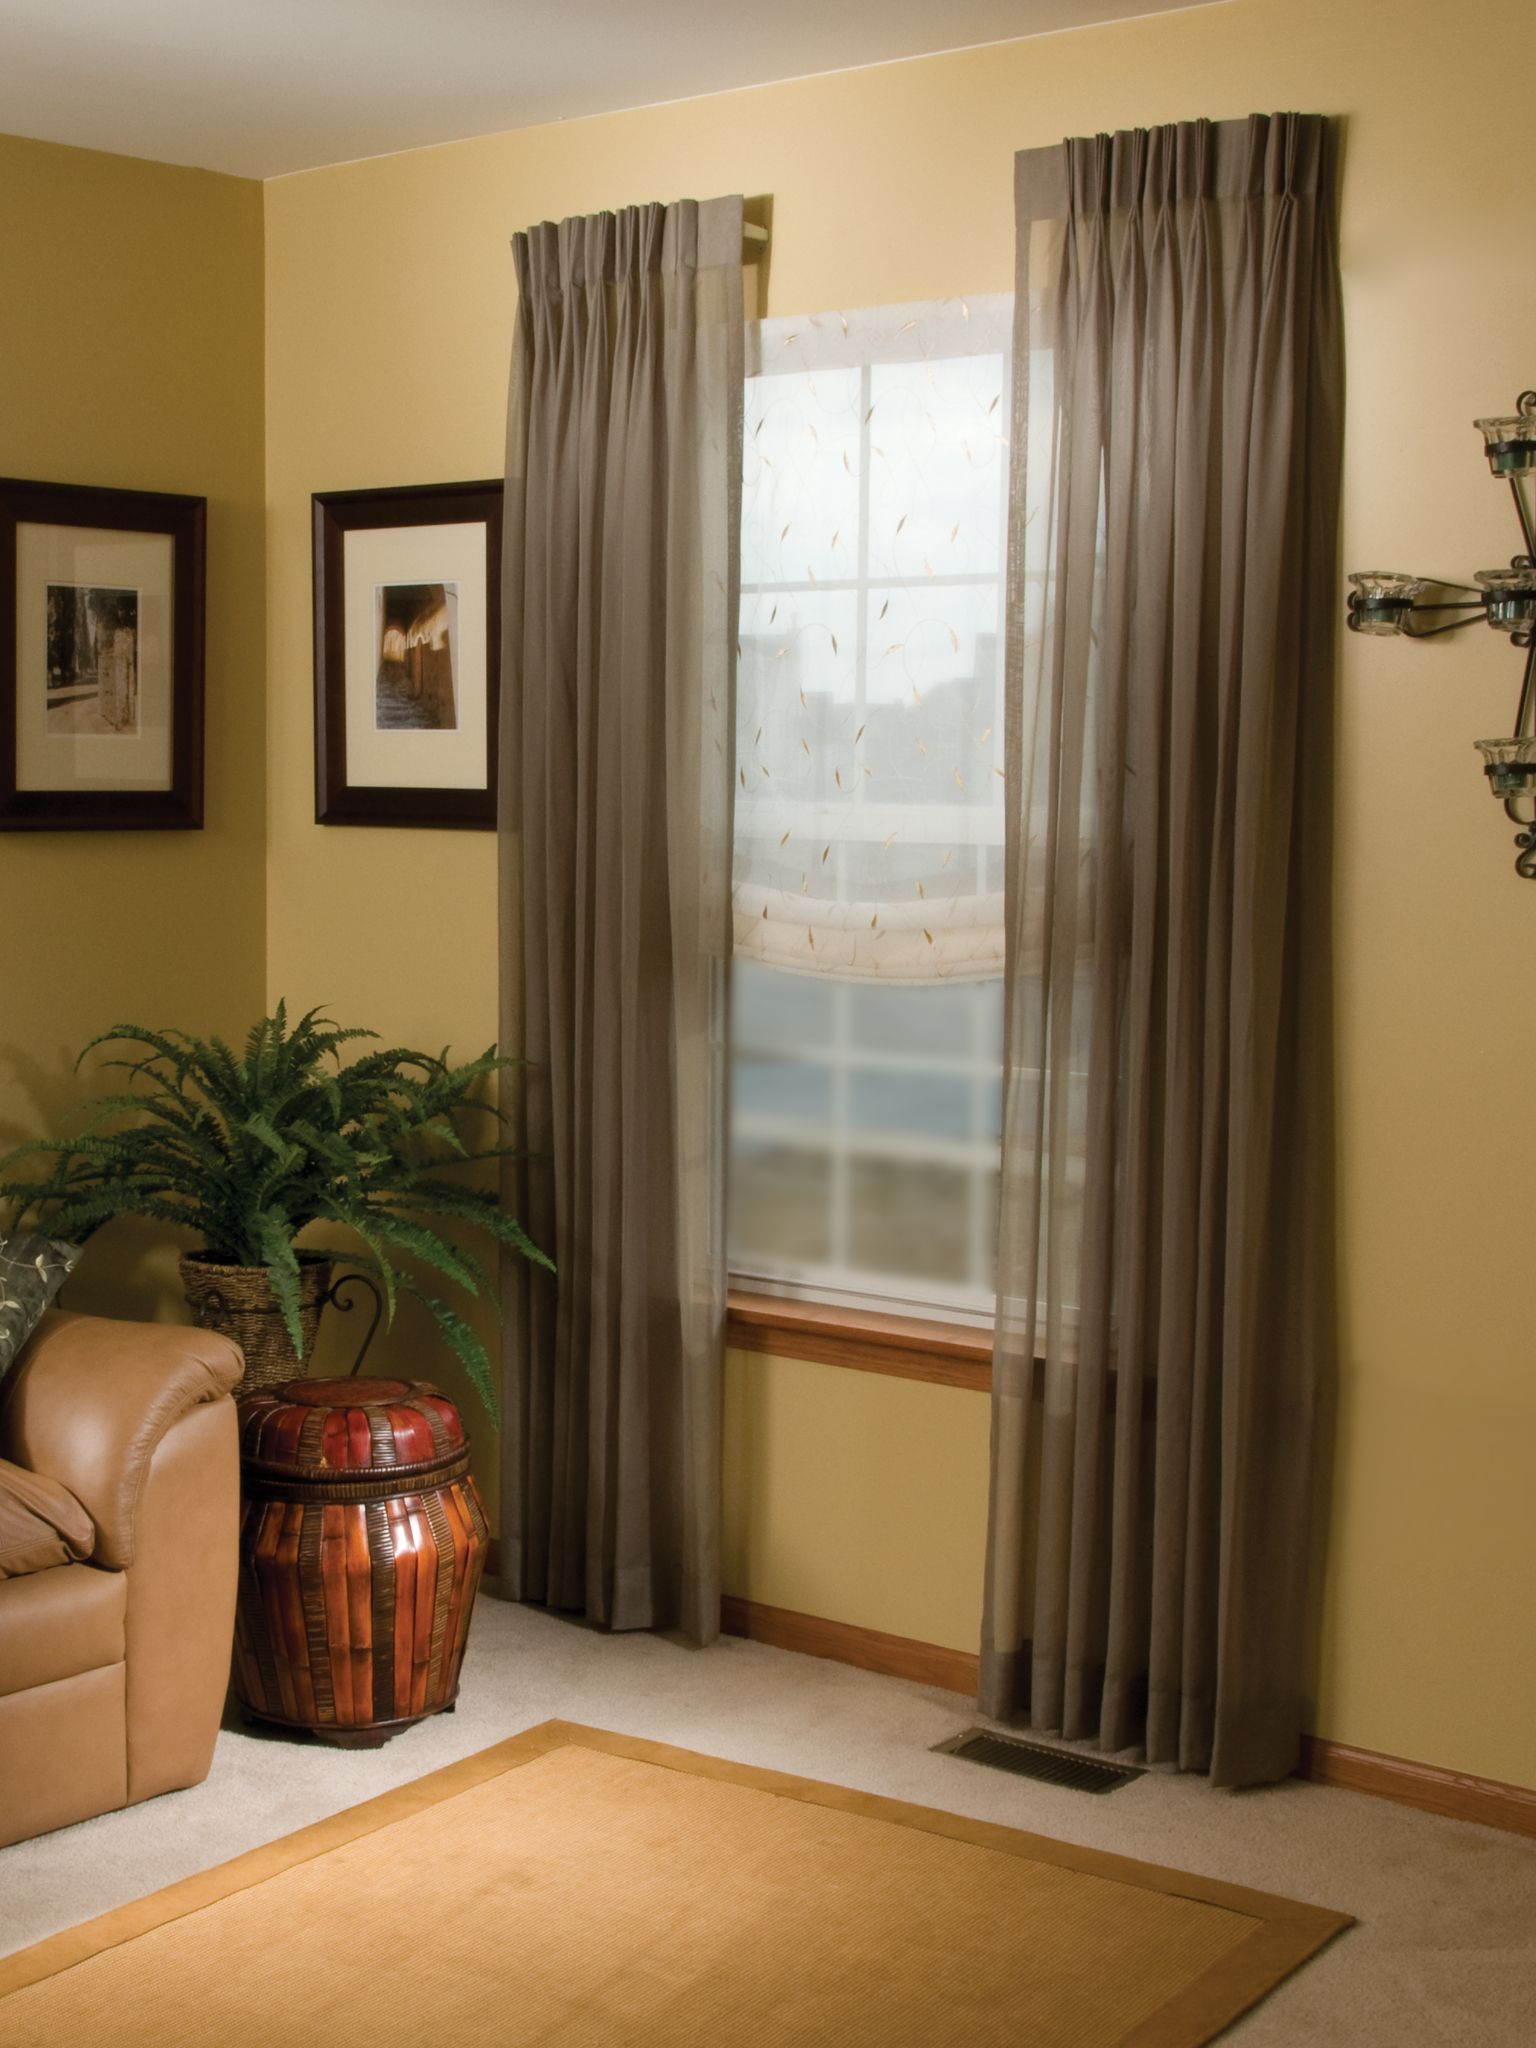 Dark Wood Curtain Rings Sheer Side Panels And A Sheer Relaxed Roman Shade Add